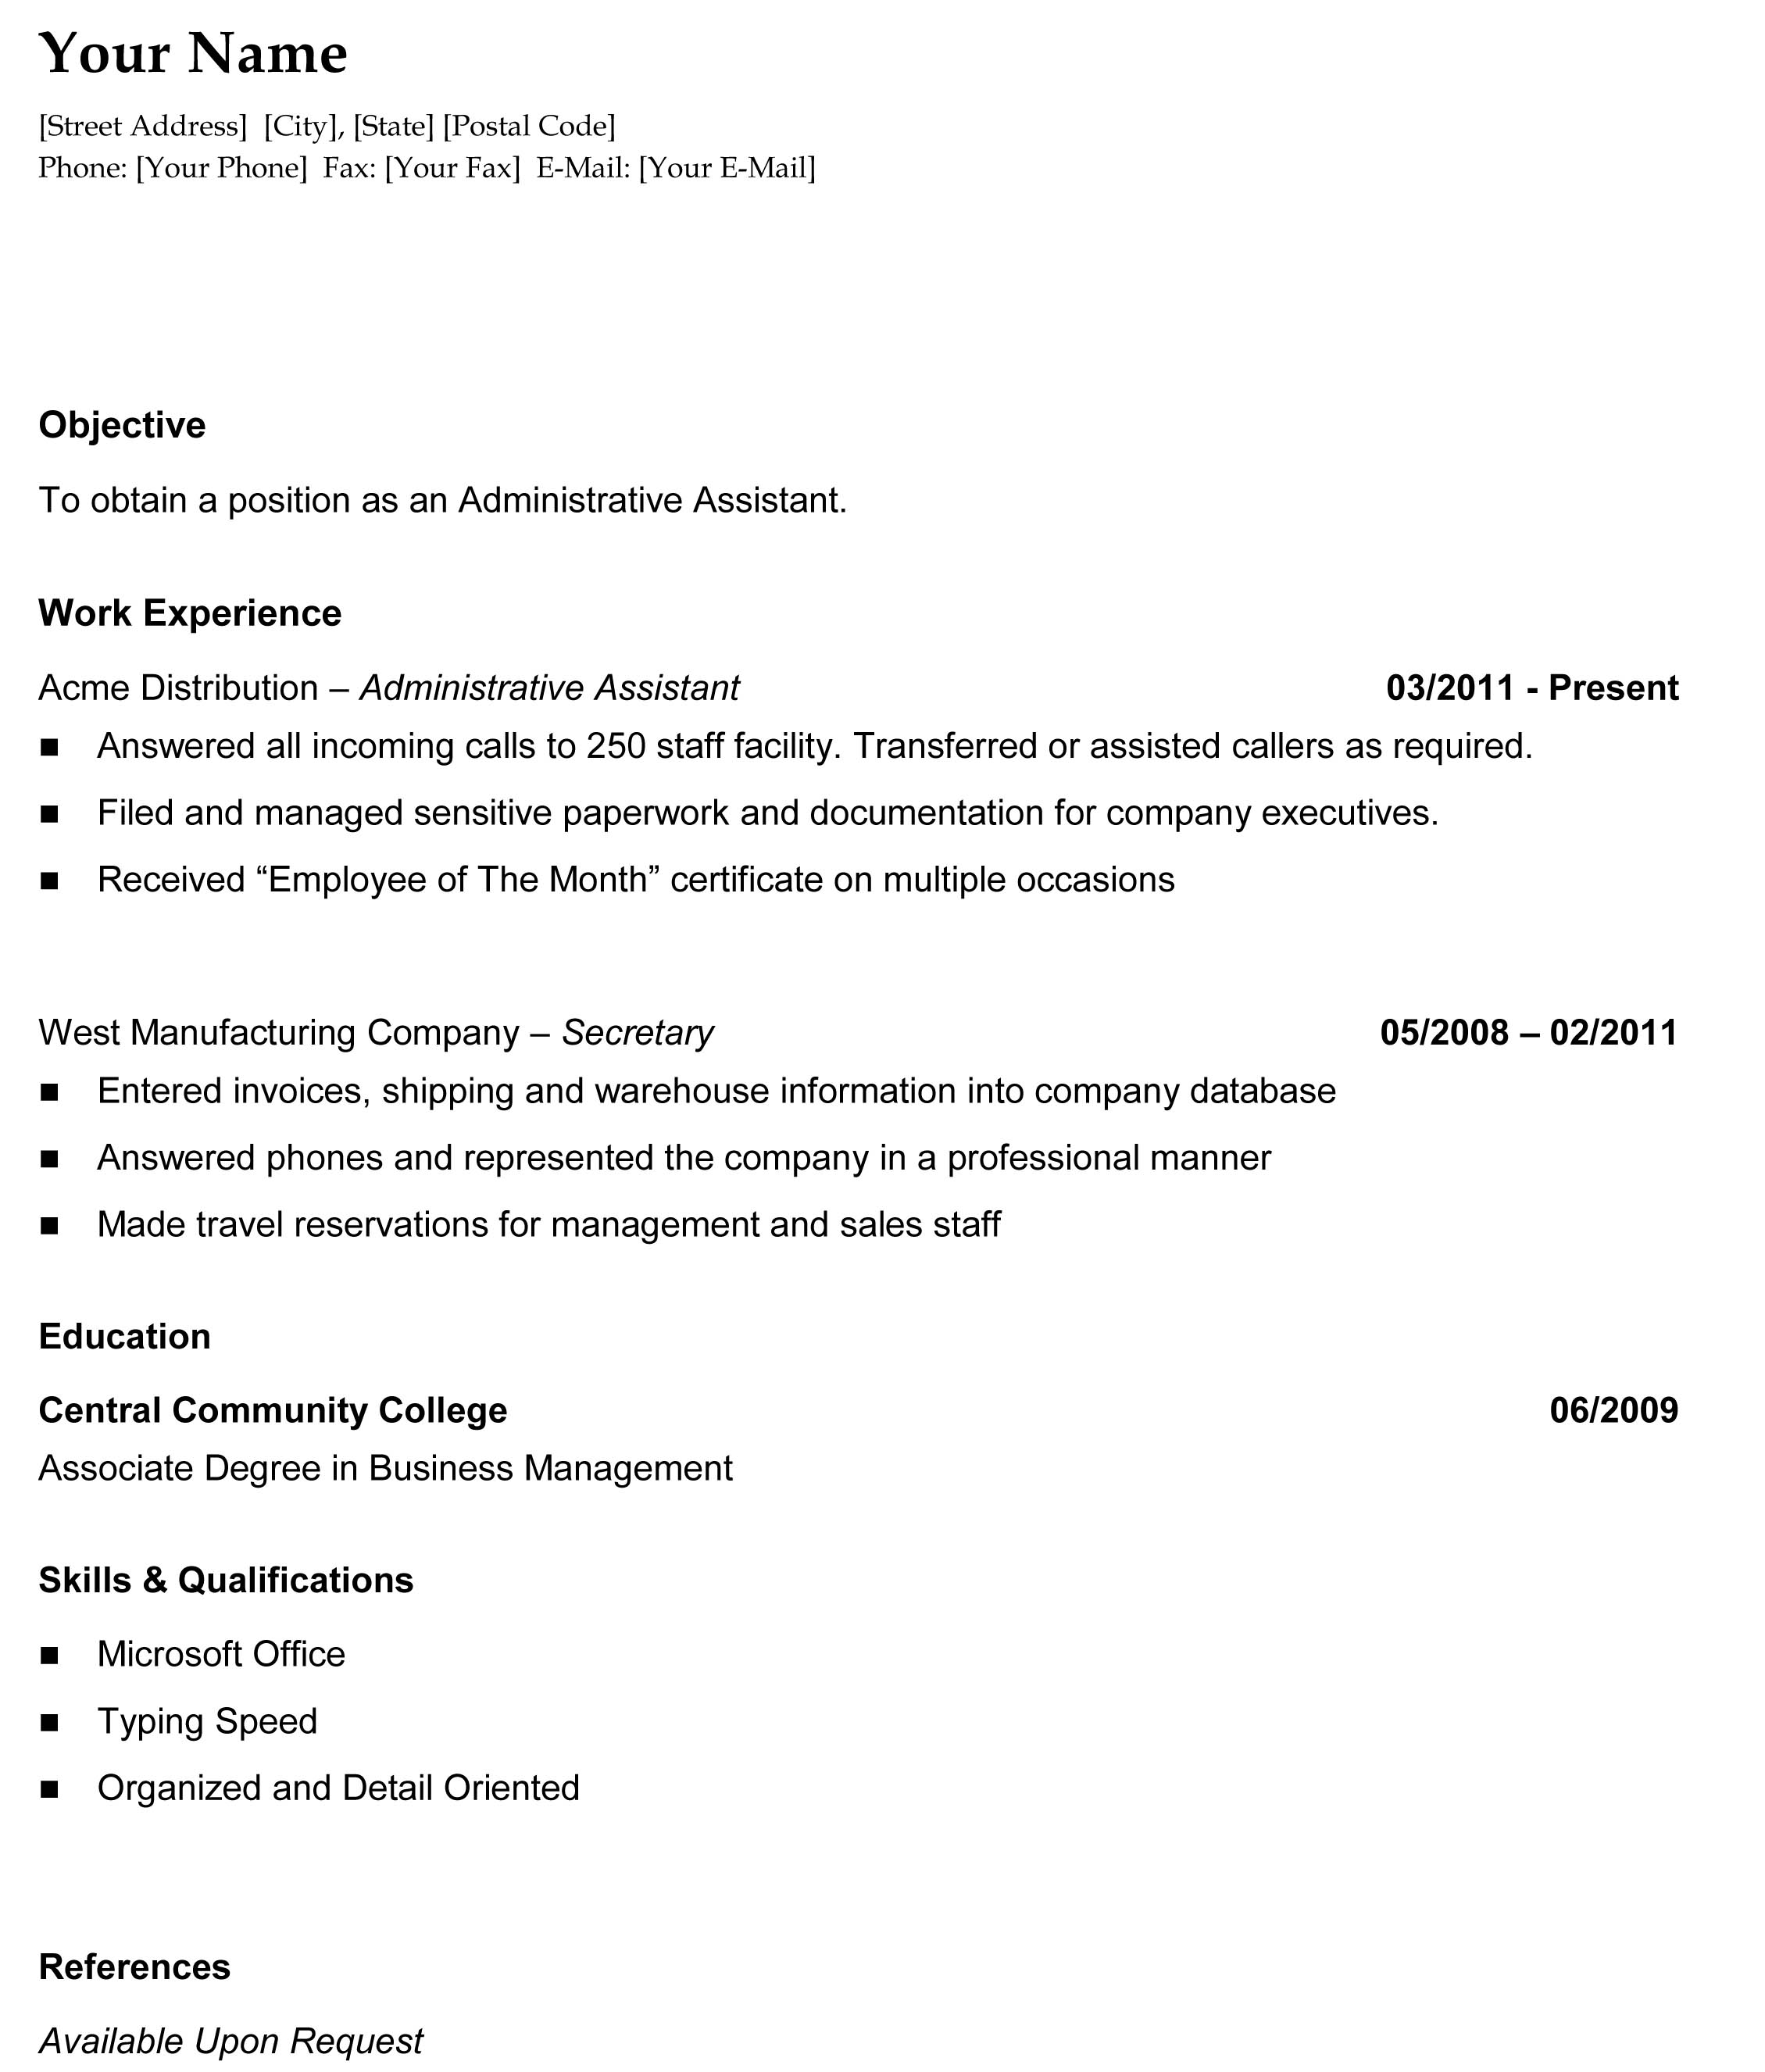 functional resume example for office manager service resume functional resume example for office manager office manager resume example professional document resume the resume